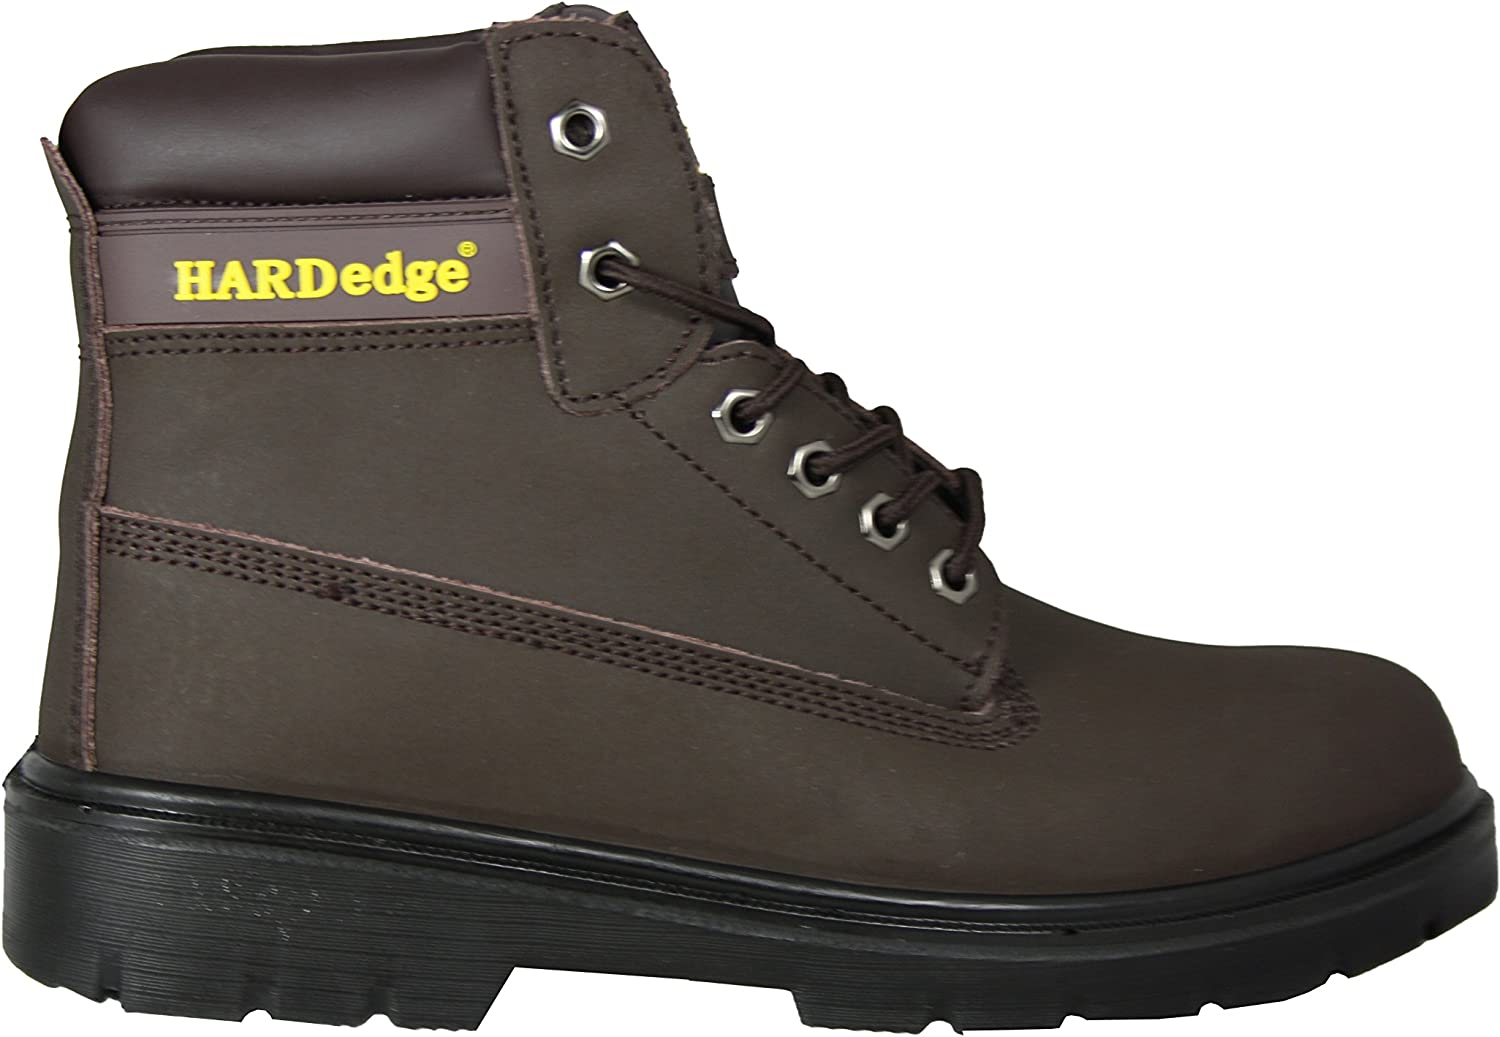 6  Eyelet Leather Safety Boots, Steel Toe Cap, Steel Mid Sole, S3 (09, Brown)